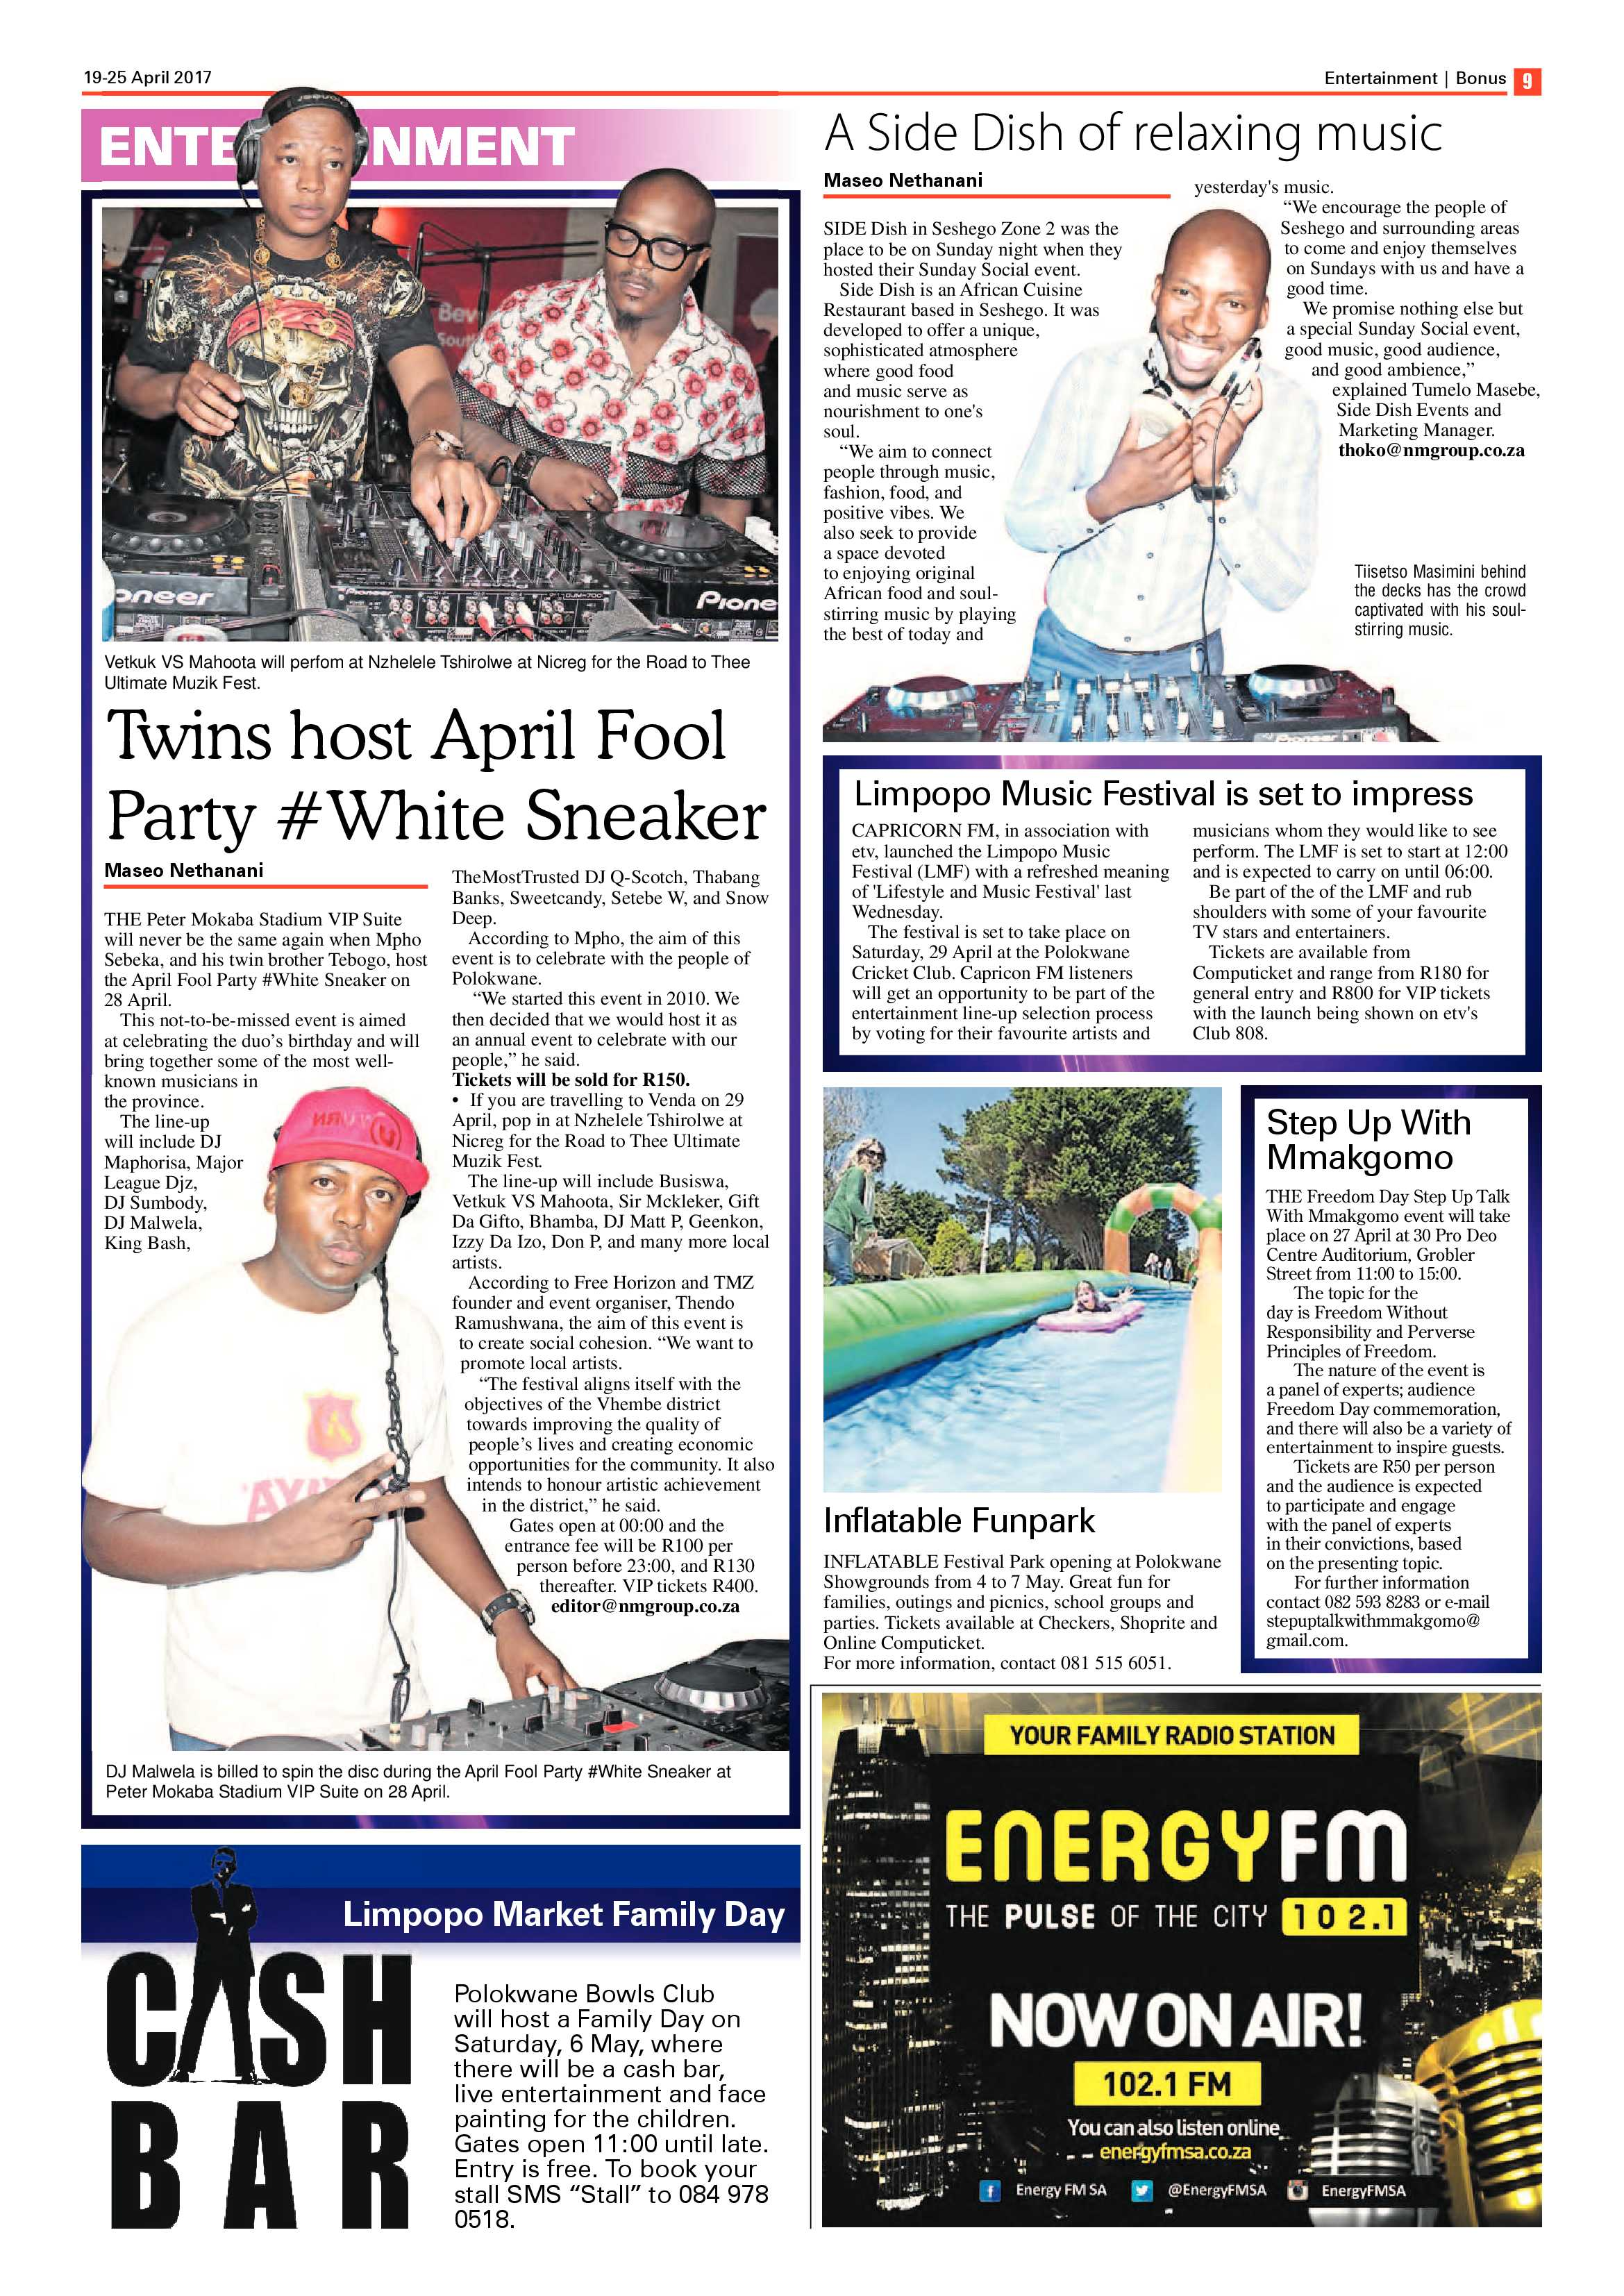 bonus-review-19-april-2017-epapers-page-9